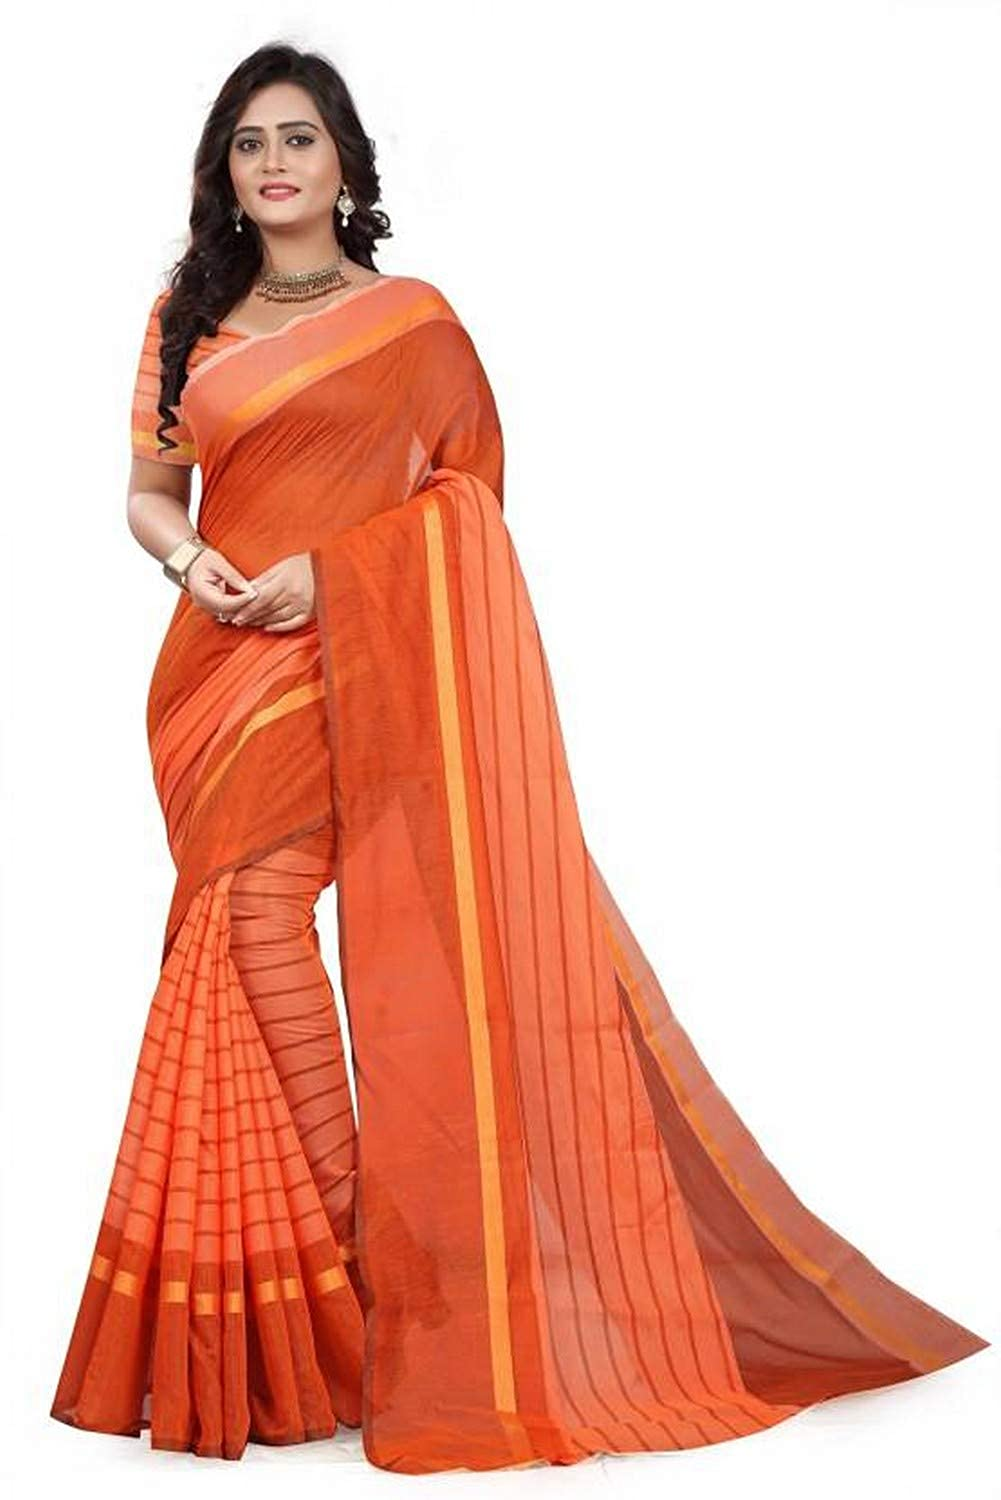 d32e5f2a13 Saree For Women Party Wear Half Sarees Offer Designer Below 500 Rupees Latest  Design Under 300 Combo Art Silk New Collection 2018 In Latest With Designer  ...